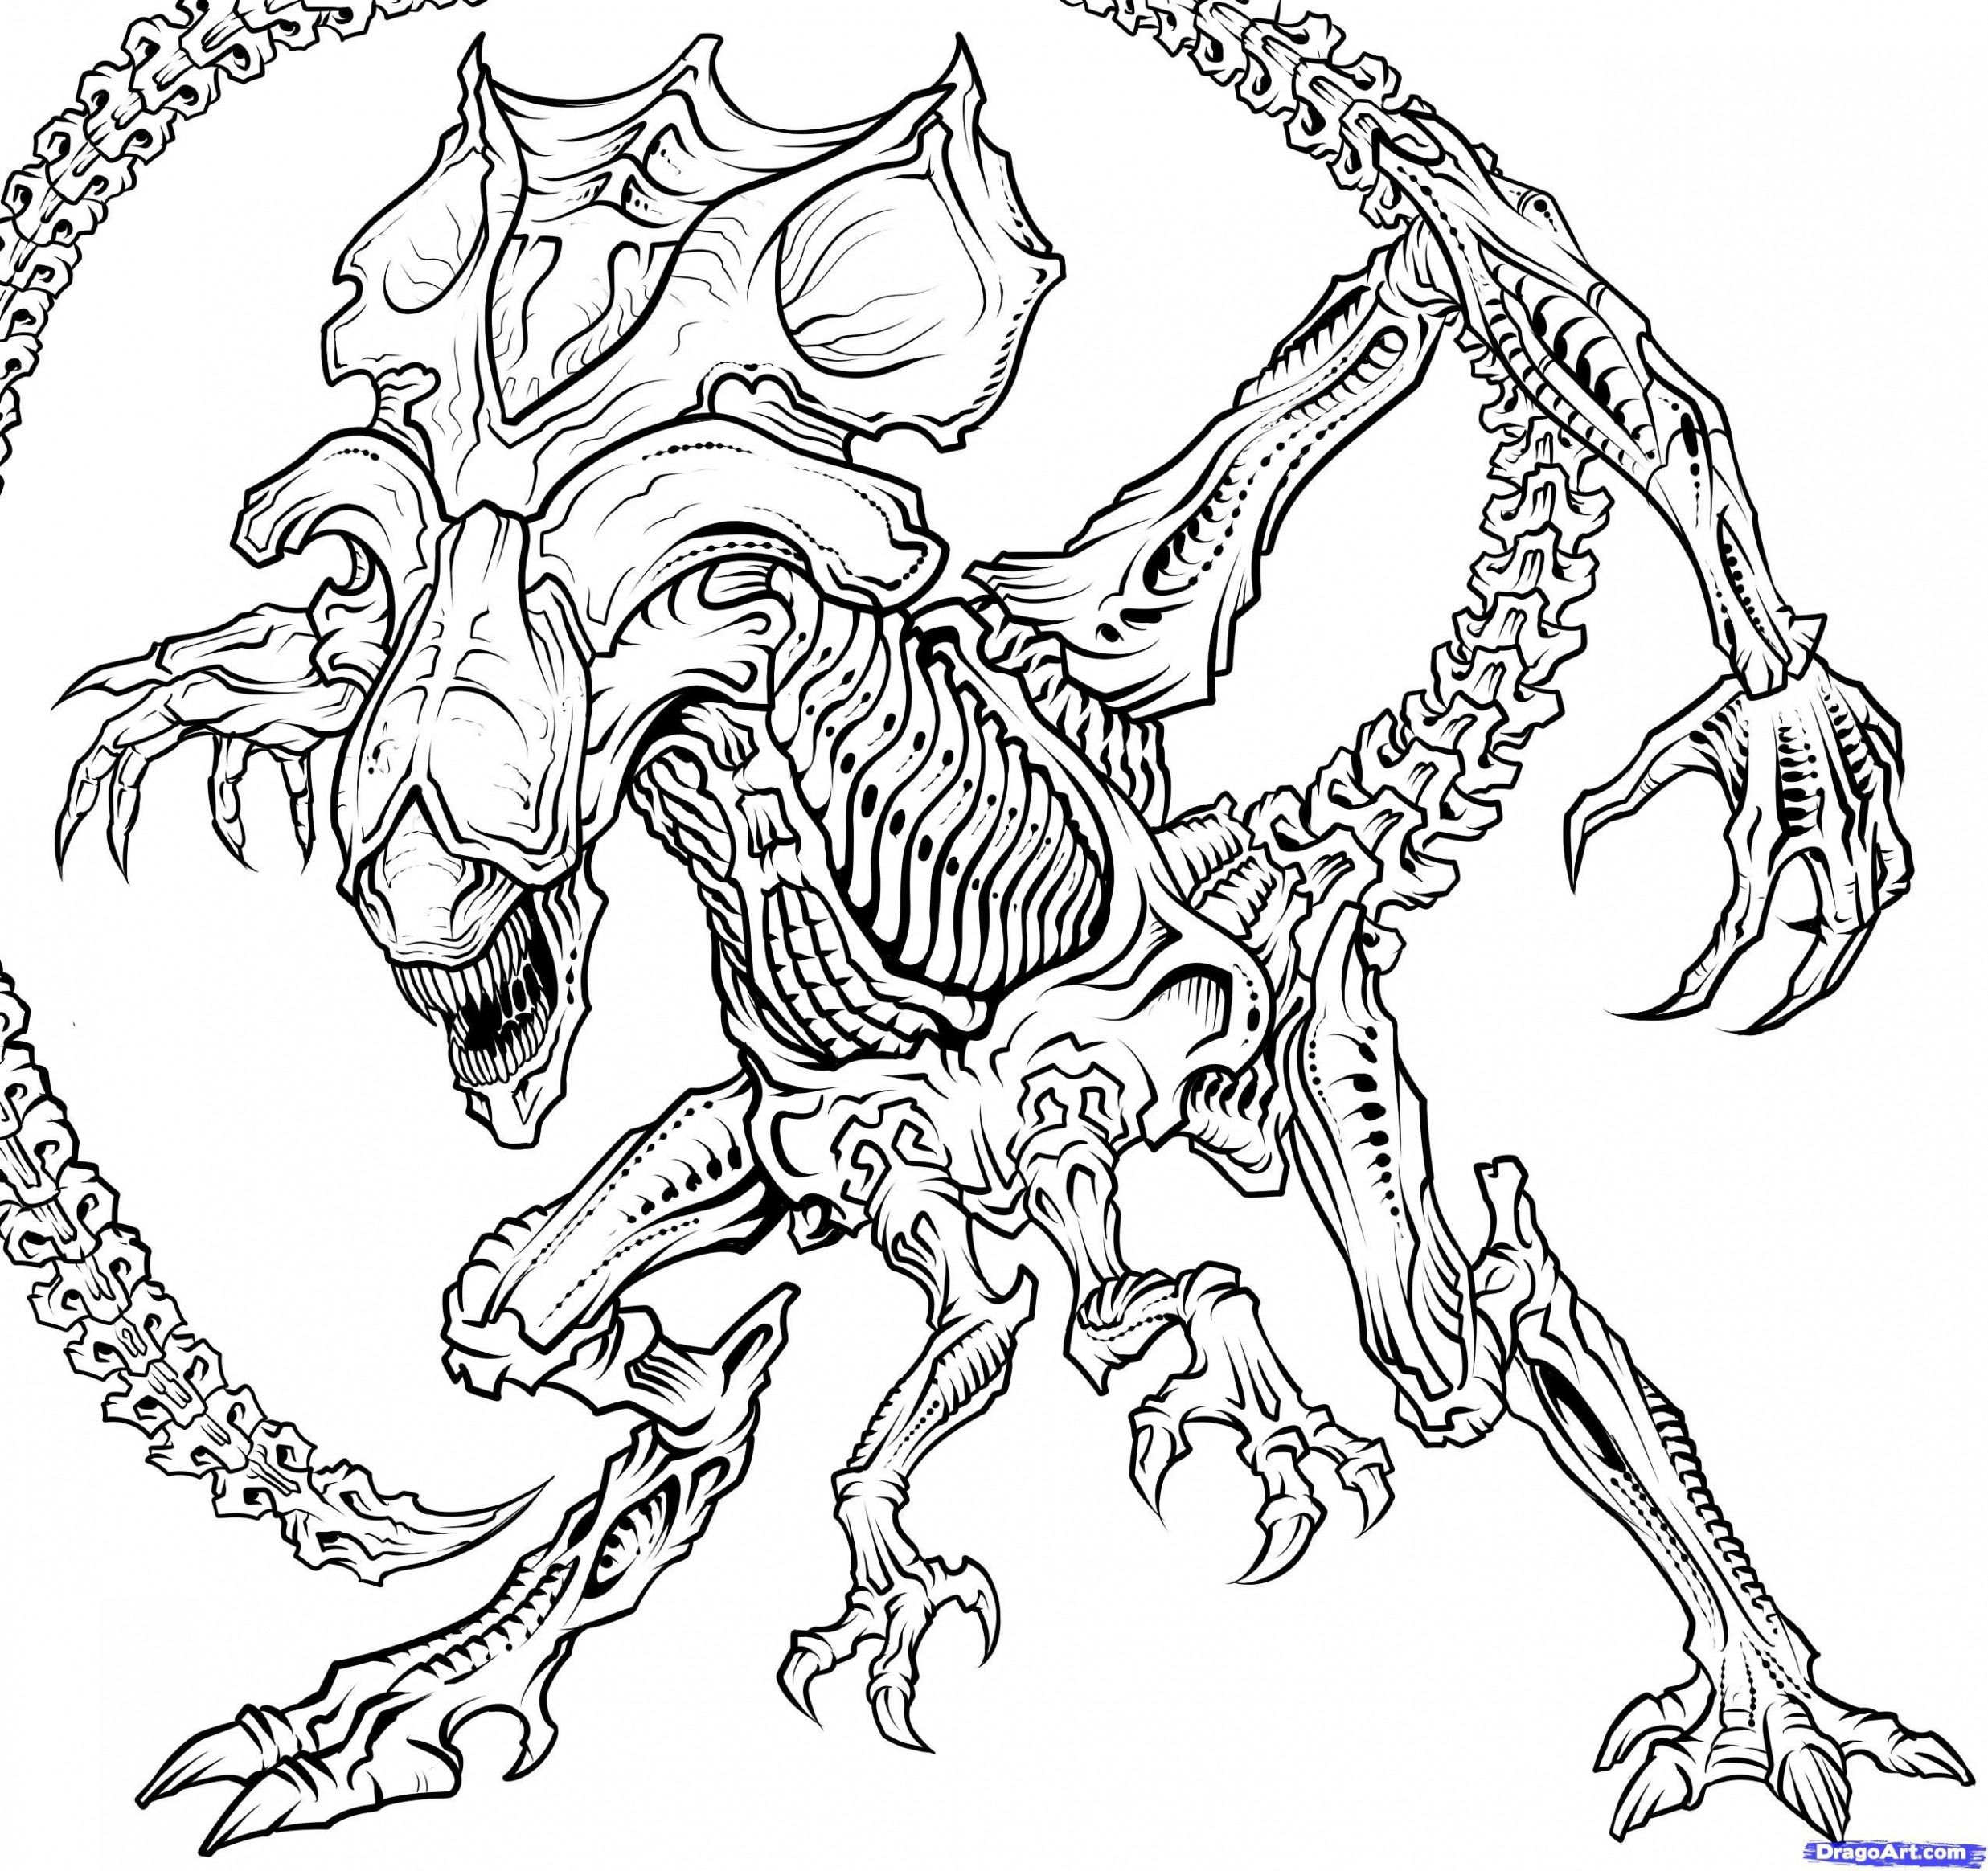 Image result for xenomorph coloring pages | adult coloring ..